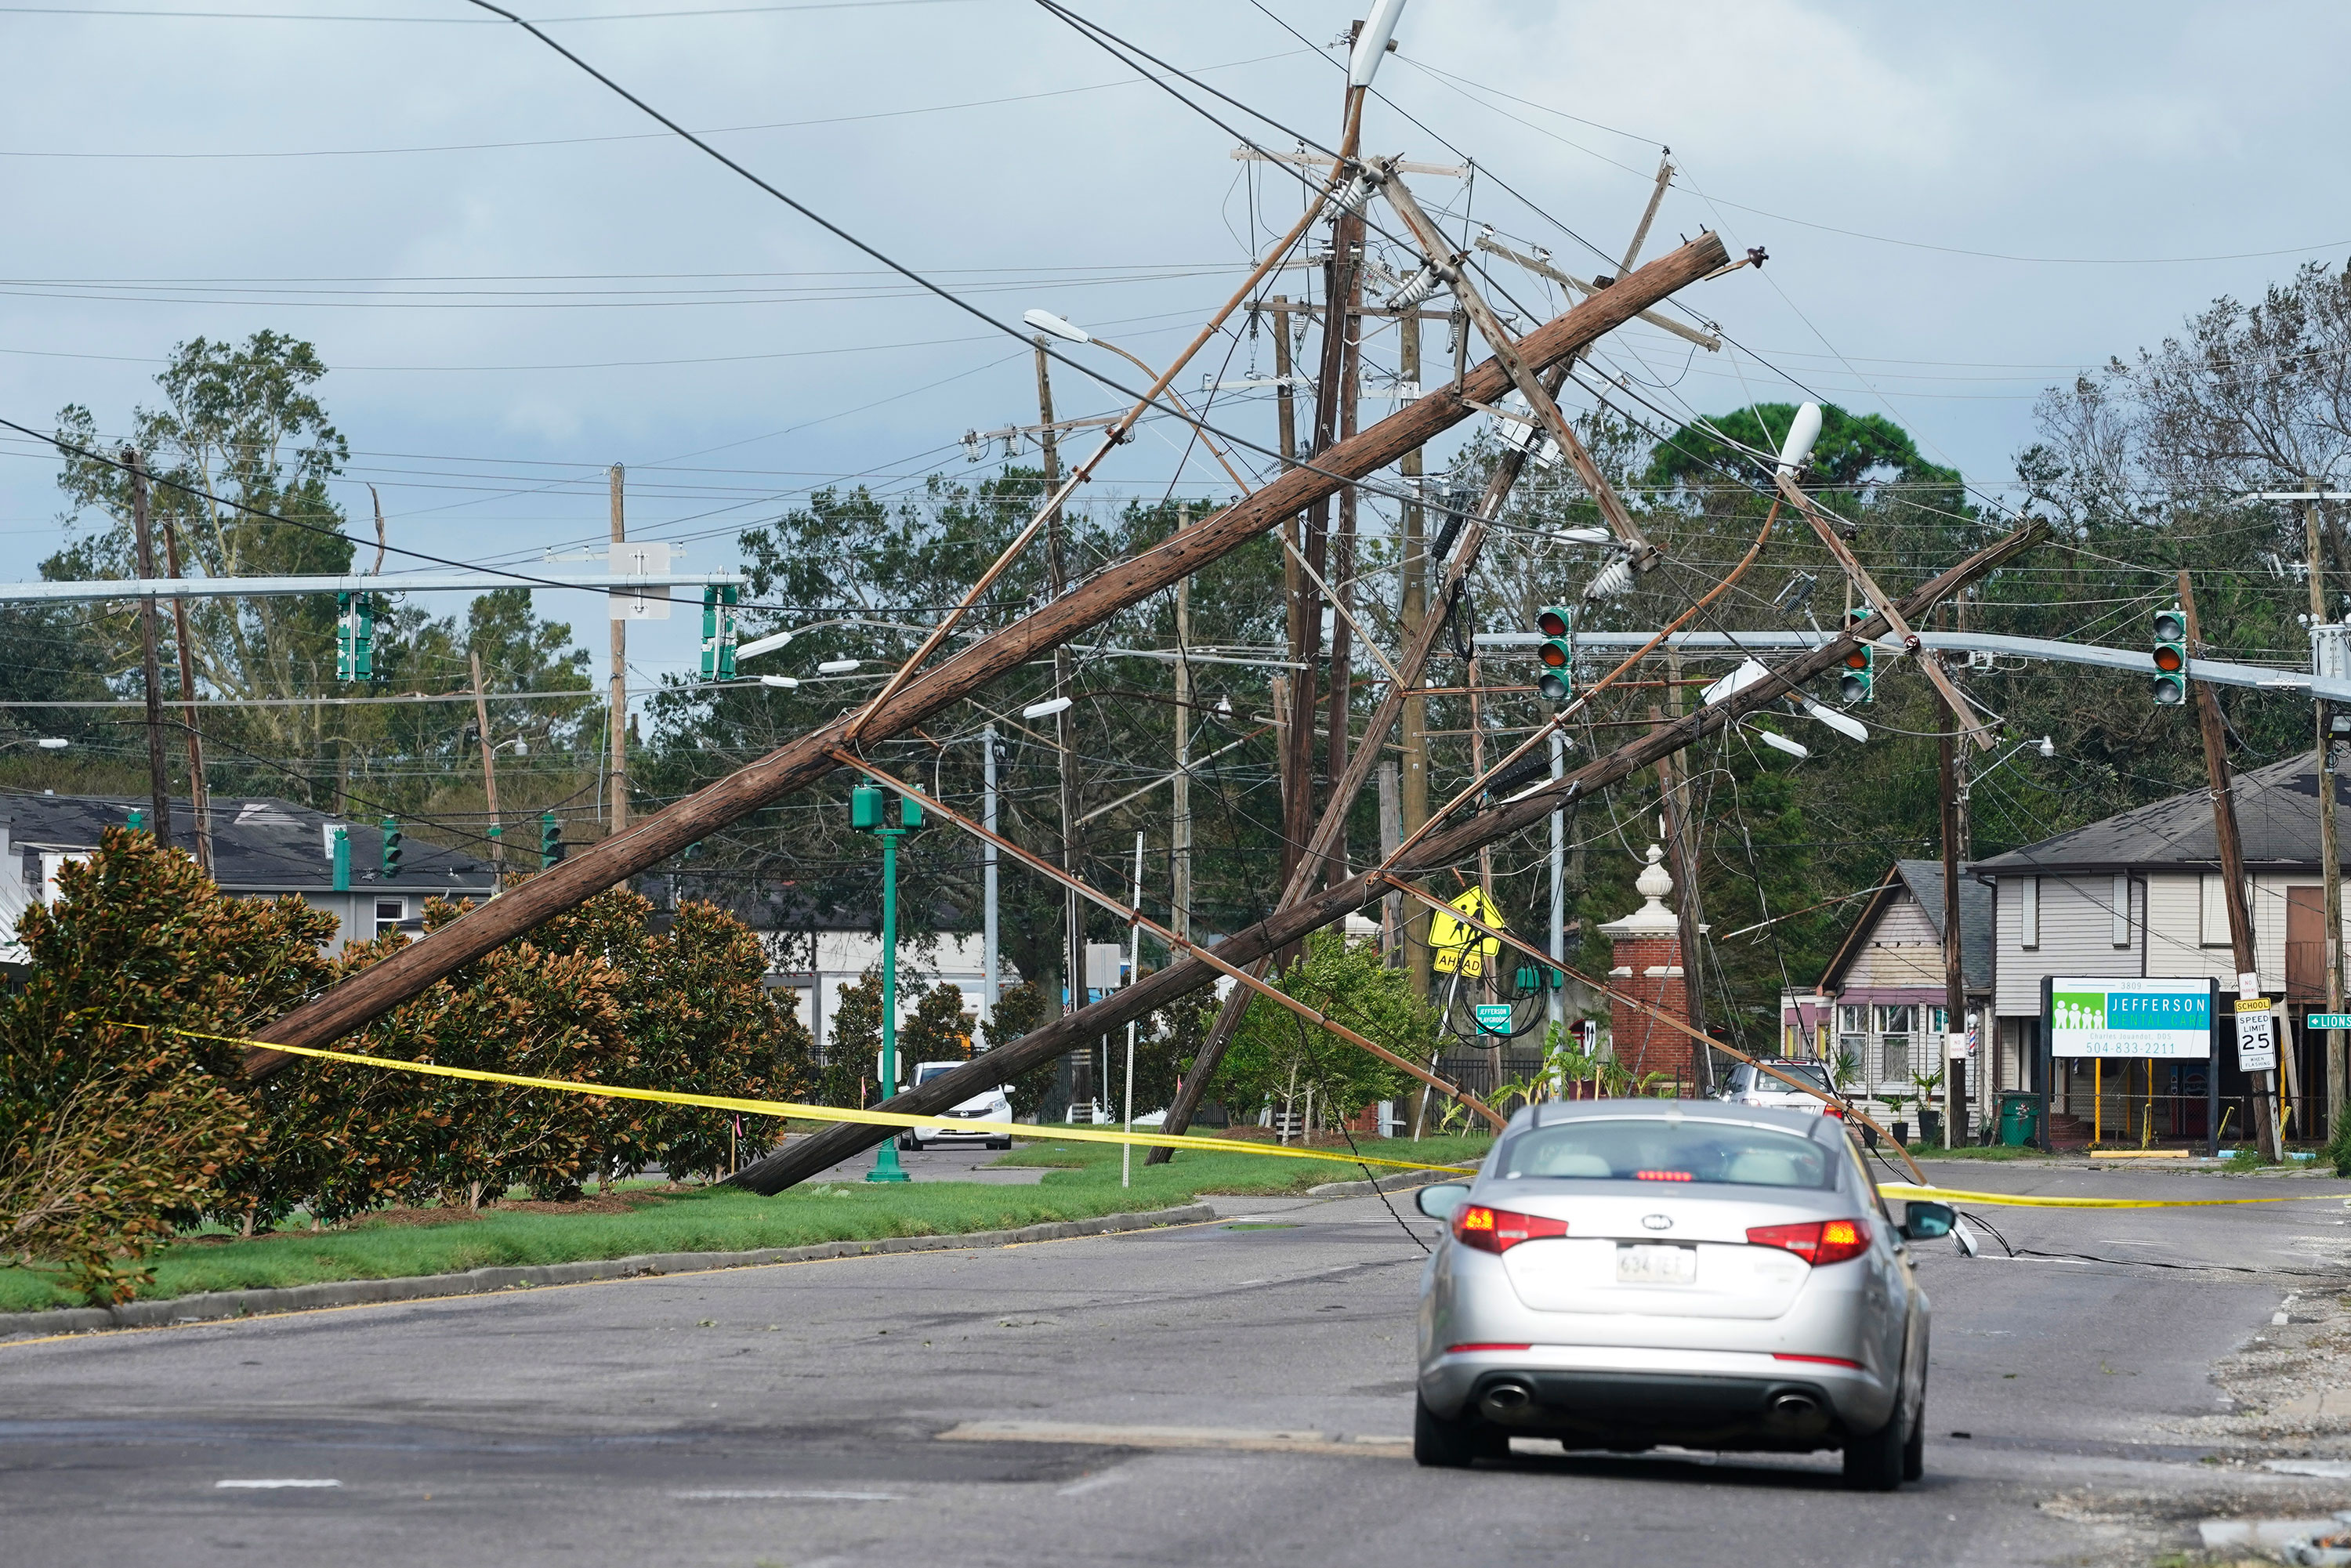 Traffic diverts around downed power lines in Metairie, Louisiana.